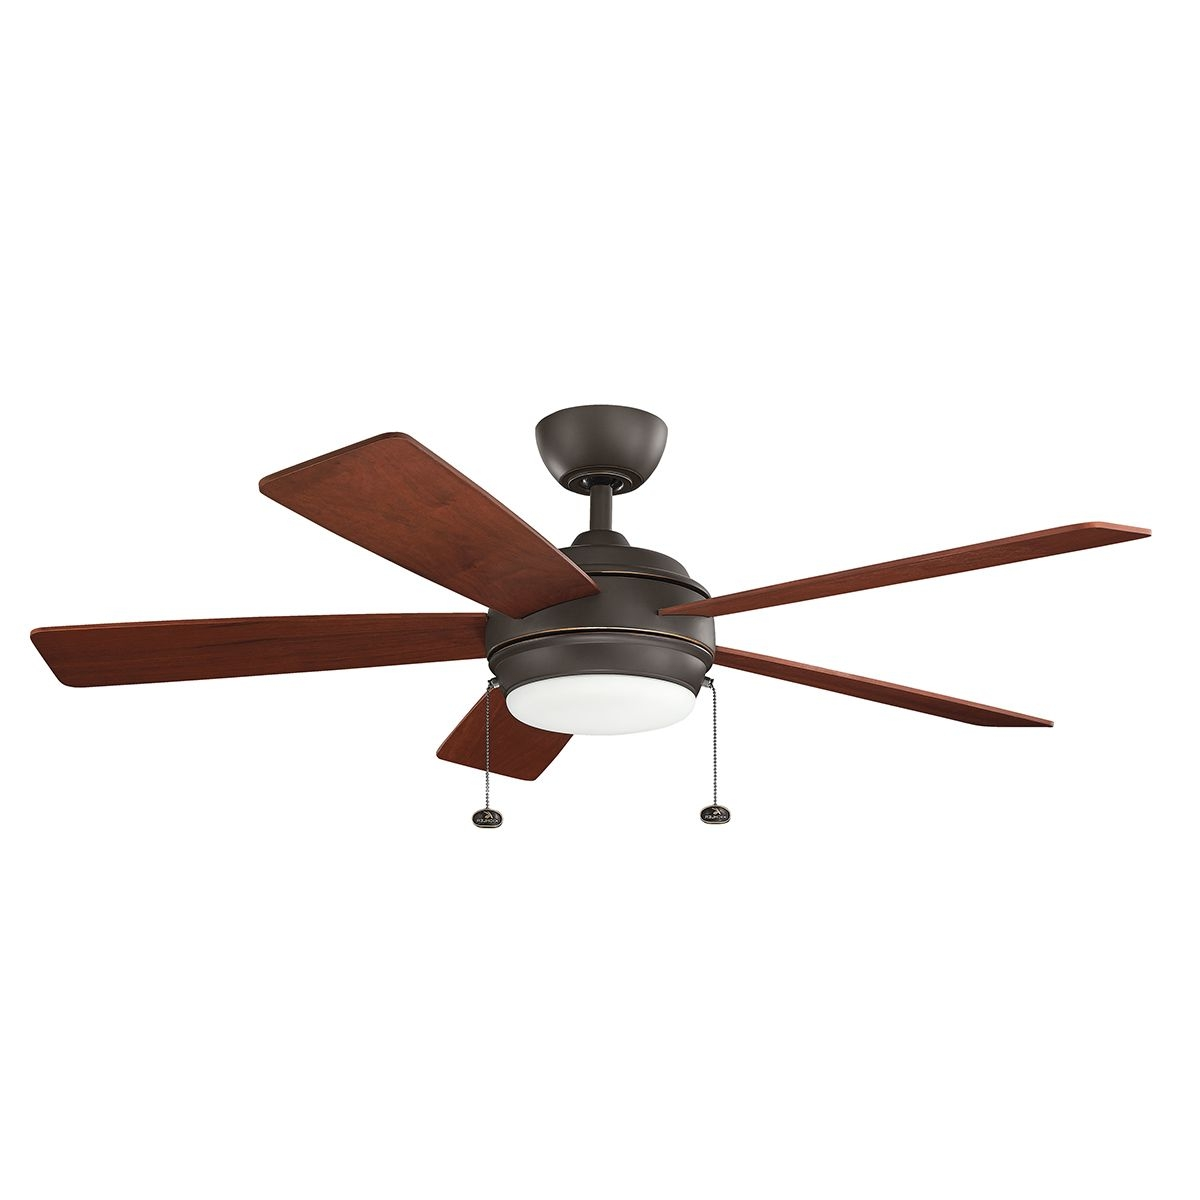 Kmart Outdoor Ceiling Fans Within Most Recently Released Hugger 52 In Black Ceiling Fan Awesome Modern White Ceiling Fans (View 10 of 20)